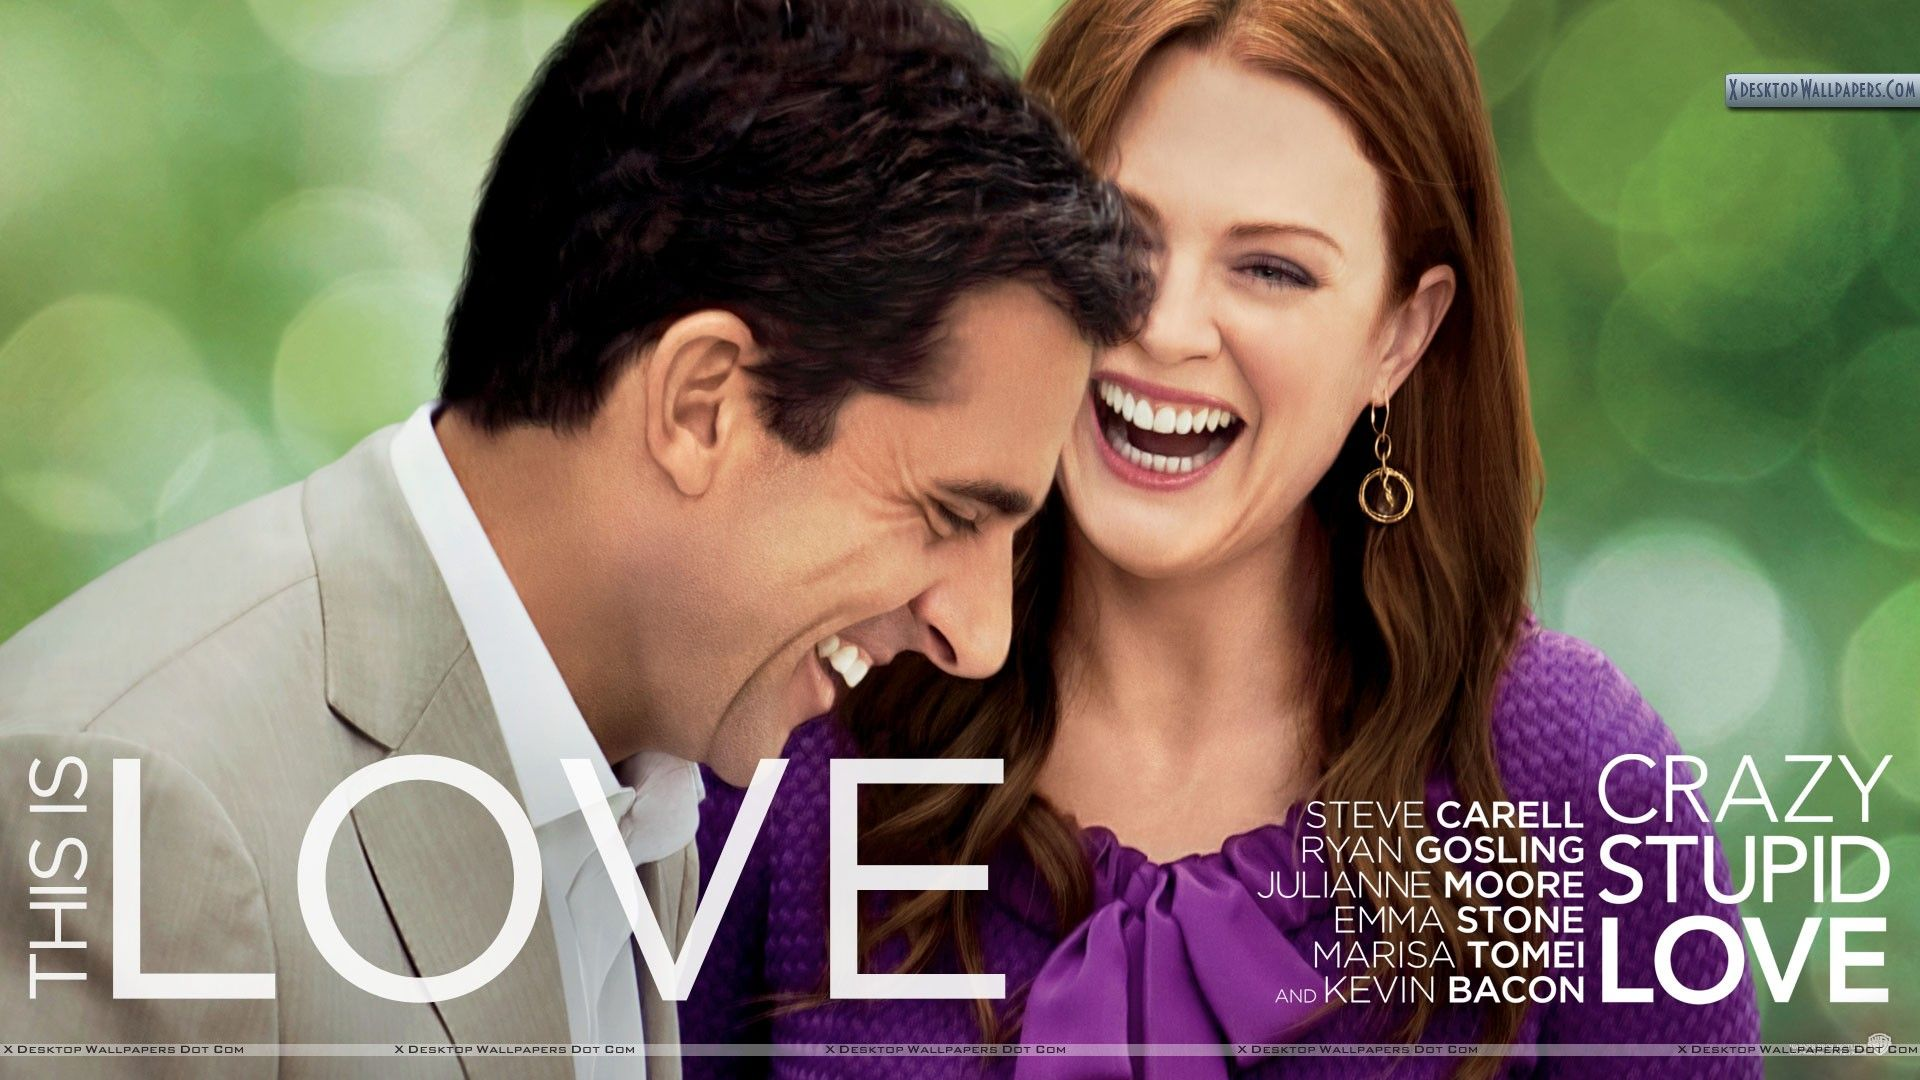 Julianne Moore and Steve Carell in Crazy, Stupid, Love Wallpapers